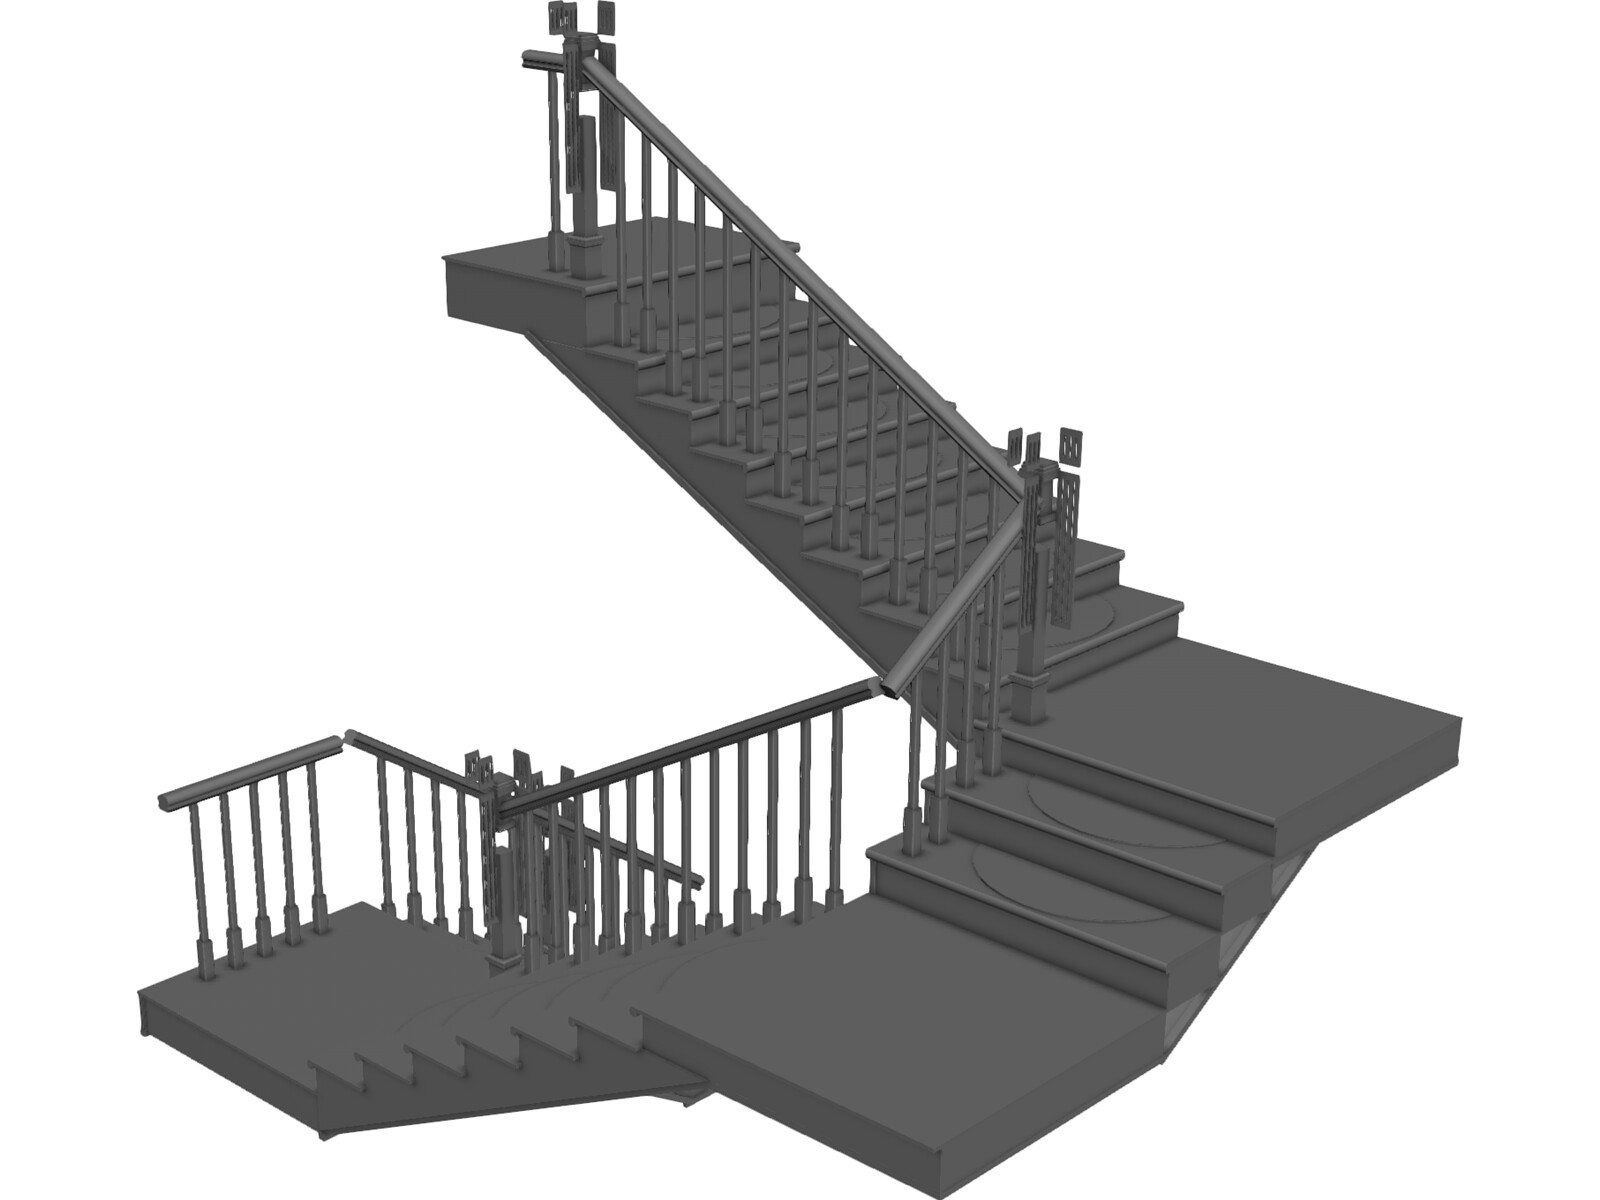 Stair with 3 Flights and 3 Landings